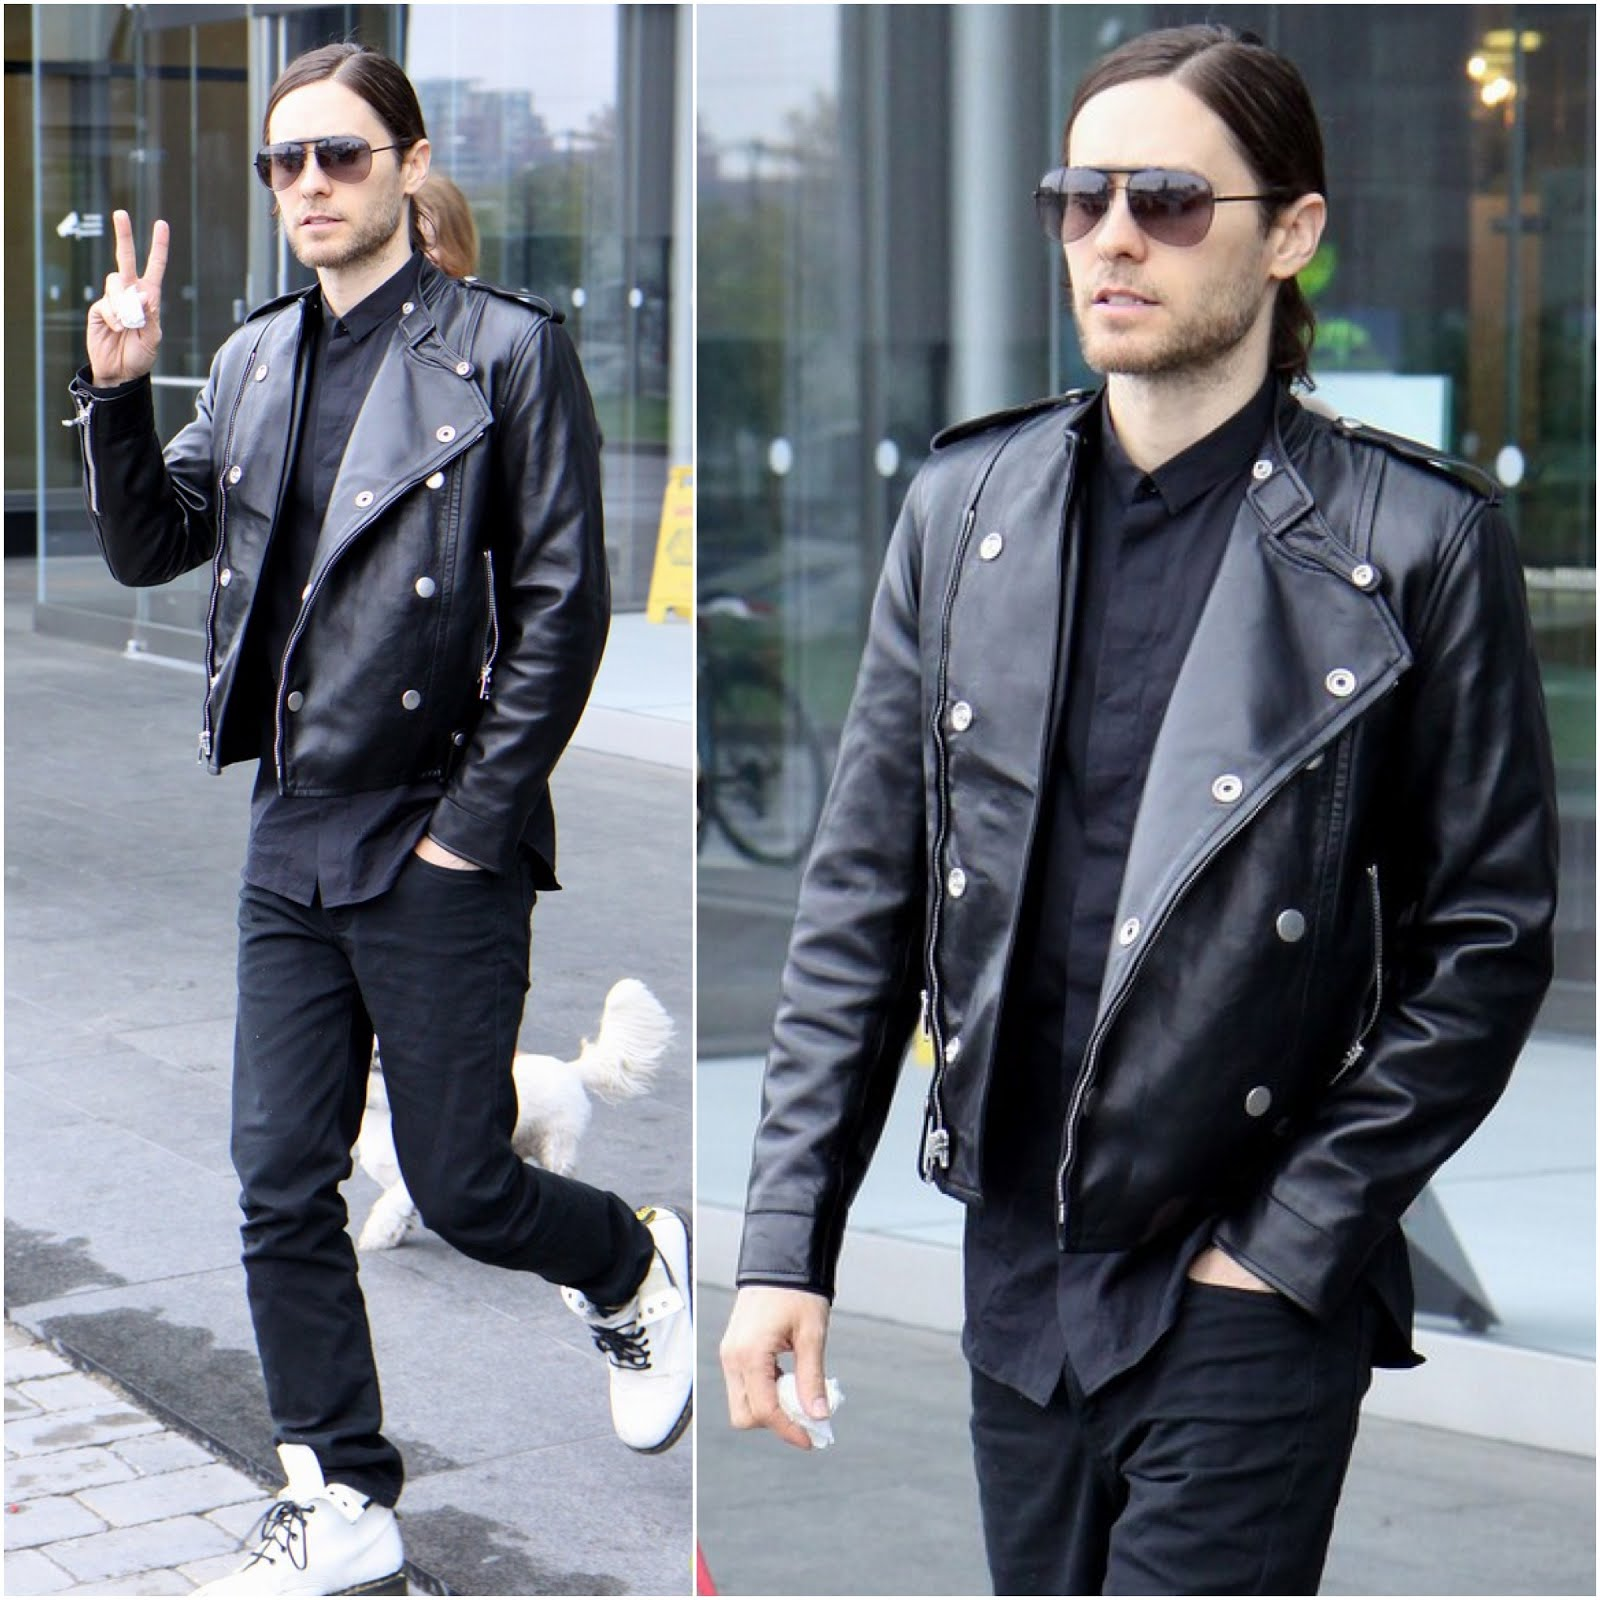 00O00 Menswear Blog: Jared Leto in Saint Laurent SLIM-FIT LEATHER BIKER JACKET - New York May 2013